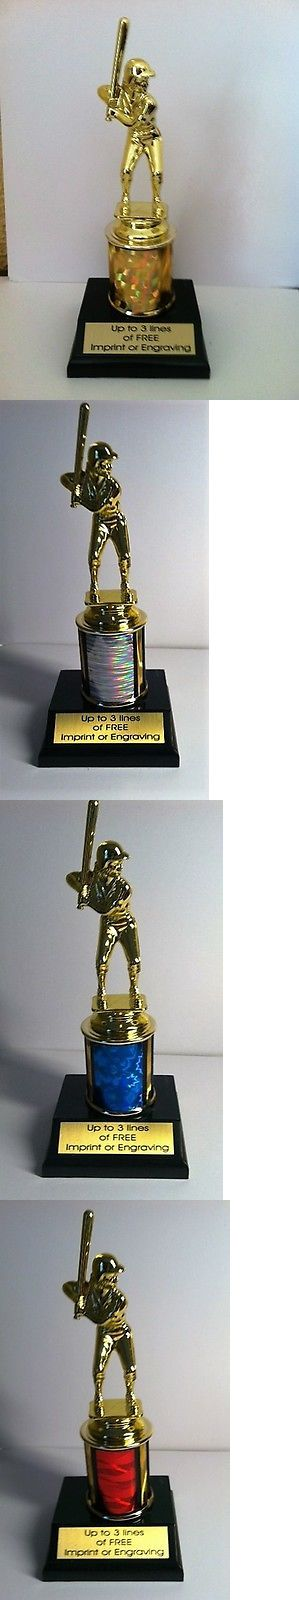 Other Baseball and Softball 181355: 12 Girls Softball Trophies For $48.00 -> BUY IT NOW ONLY: $48 on eBay!